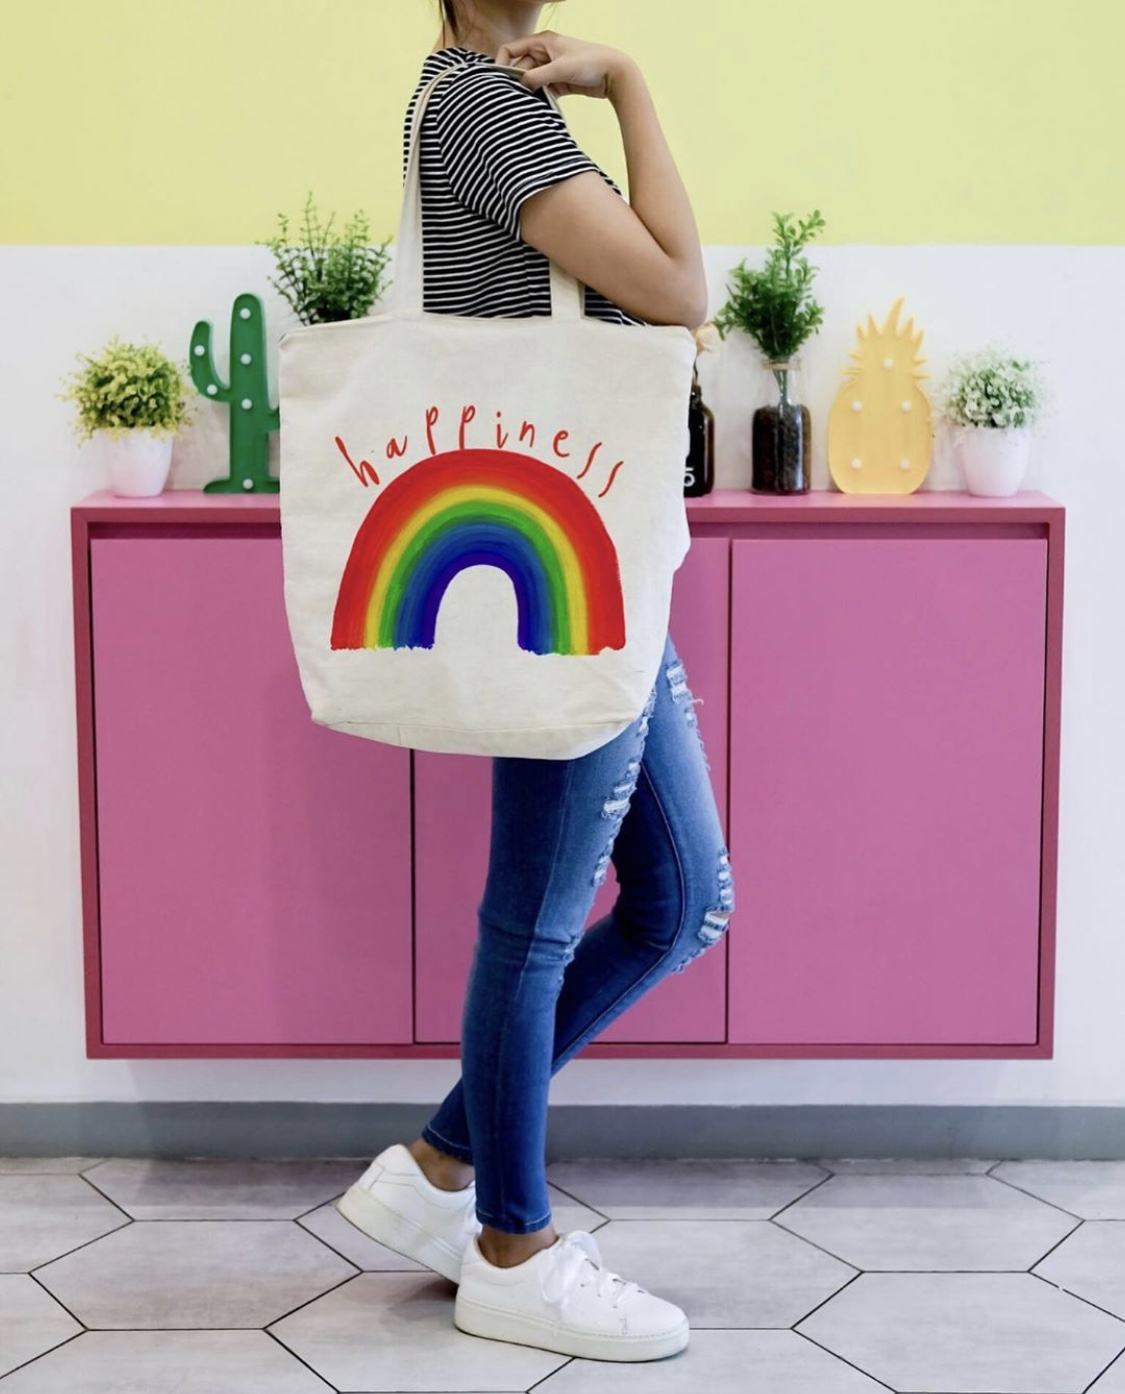 Personalised beach bag UK: The Rainbow Of Happiness by designer Heidi Clawson